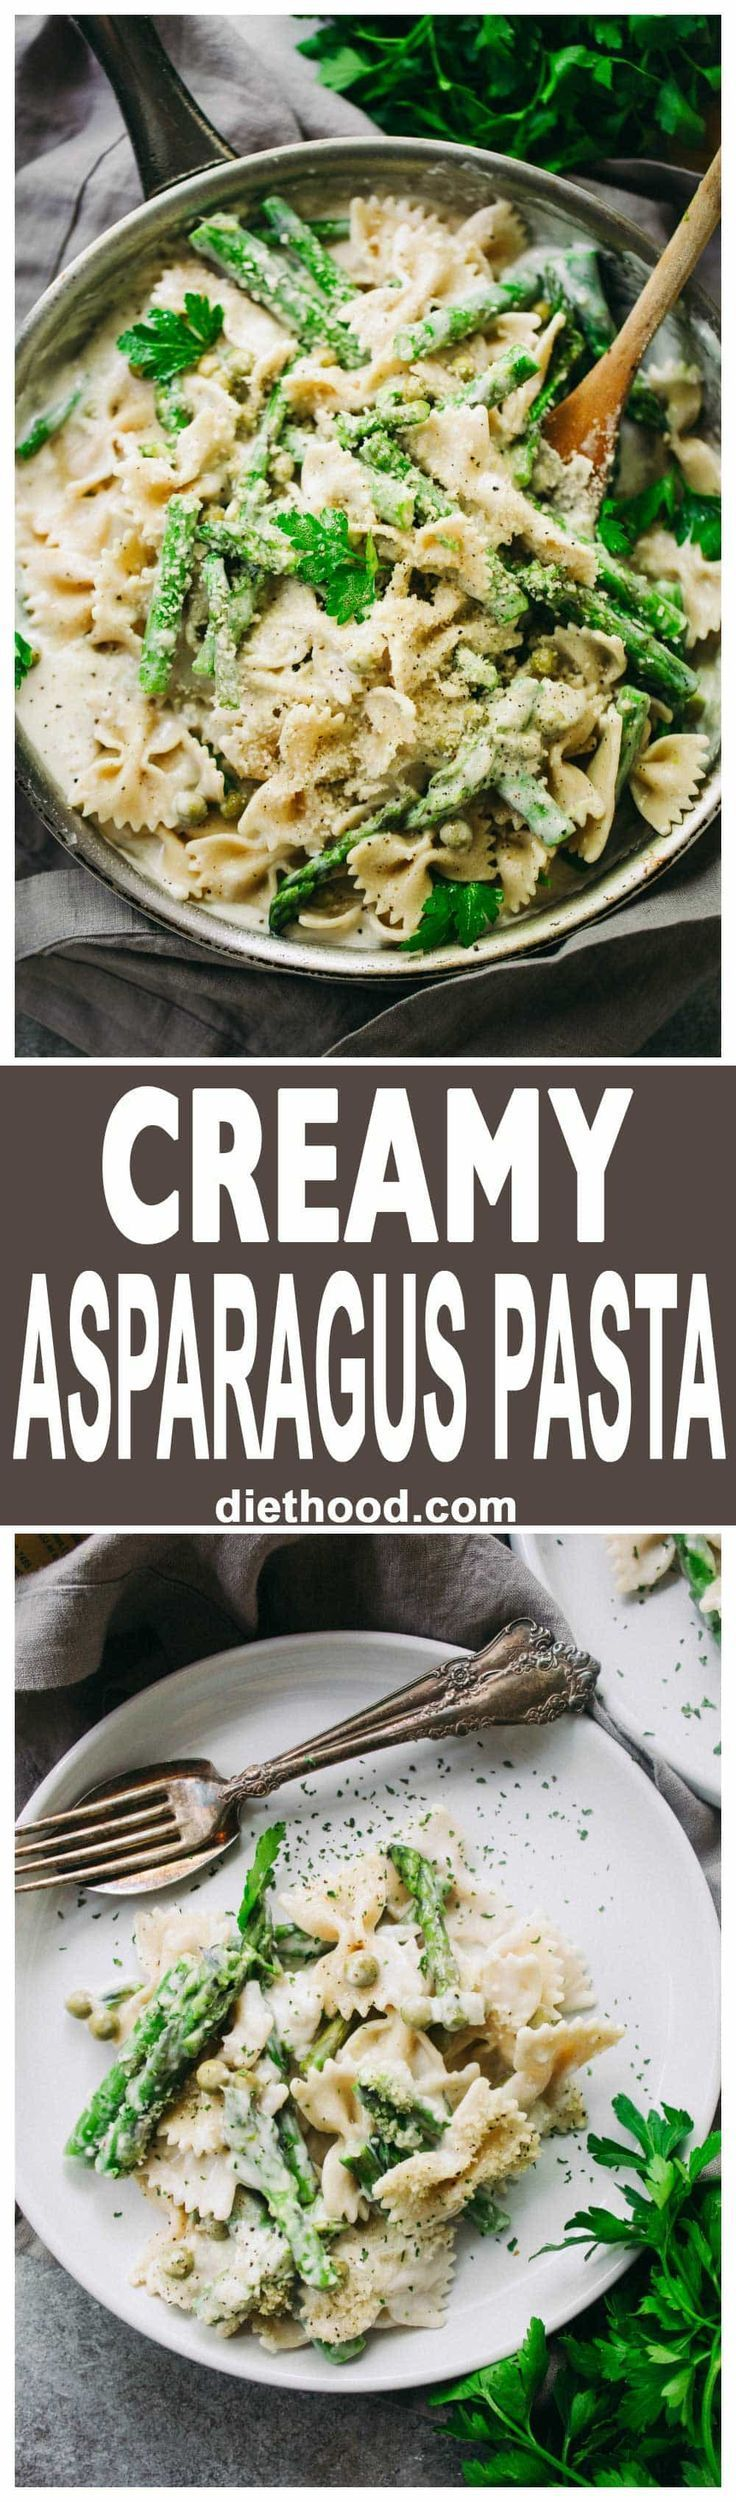 Creamy Asparagus Pasta Recipe - A creamy, yet healthy veggie loaded protein-packed pasta with asparagus and peas, all tossed in a lightened-up cream sauce!